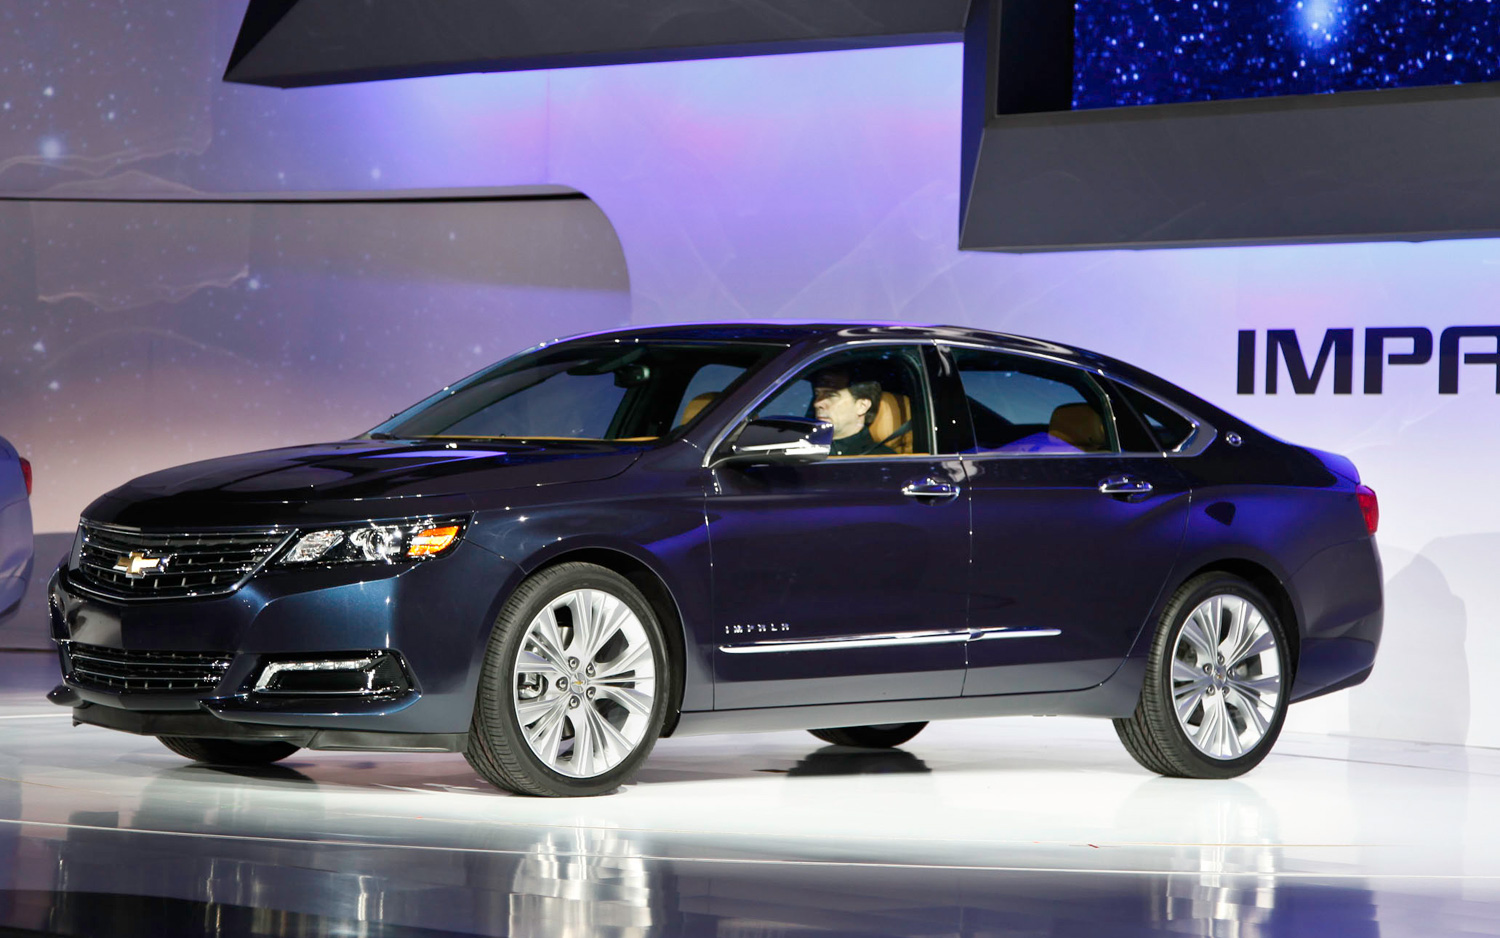 2012 new york updated 2014 chevy impala and 2013 chevy traverse fight for attention [ 1500 x 938 Pixel ]